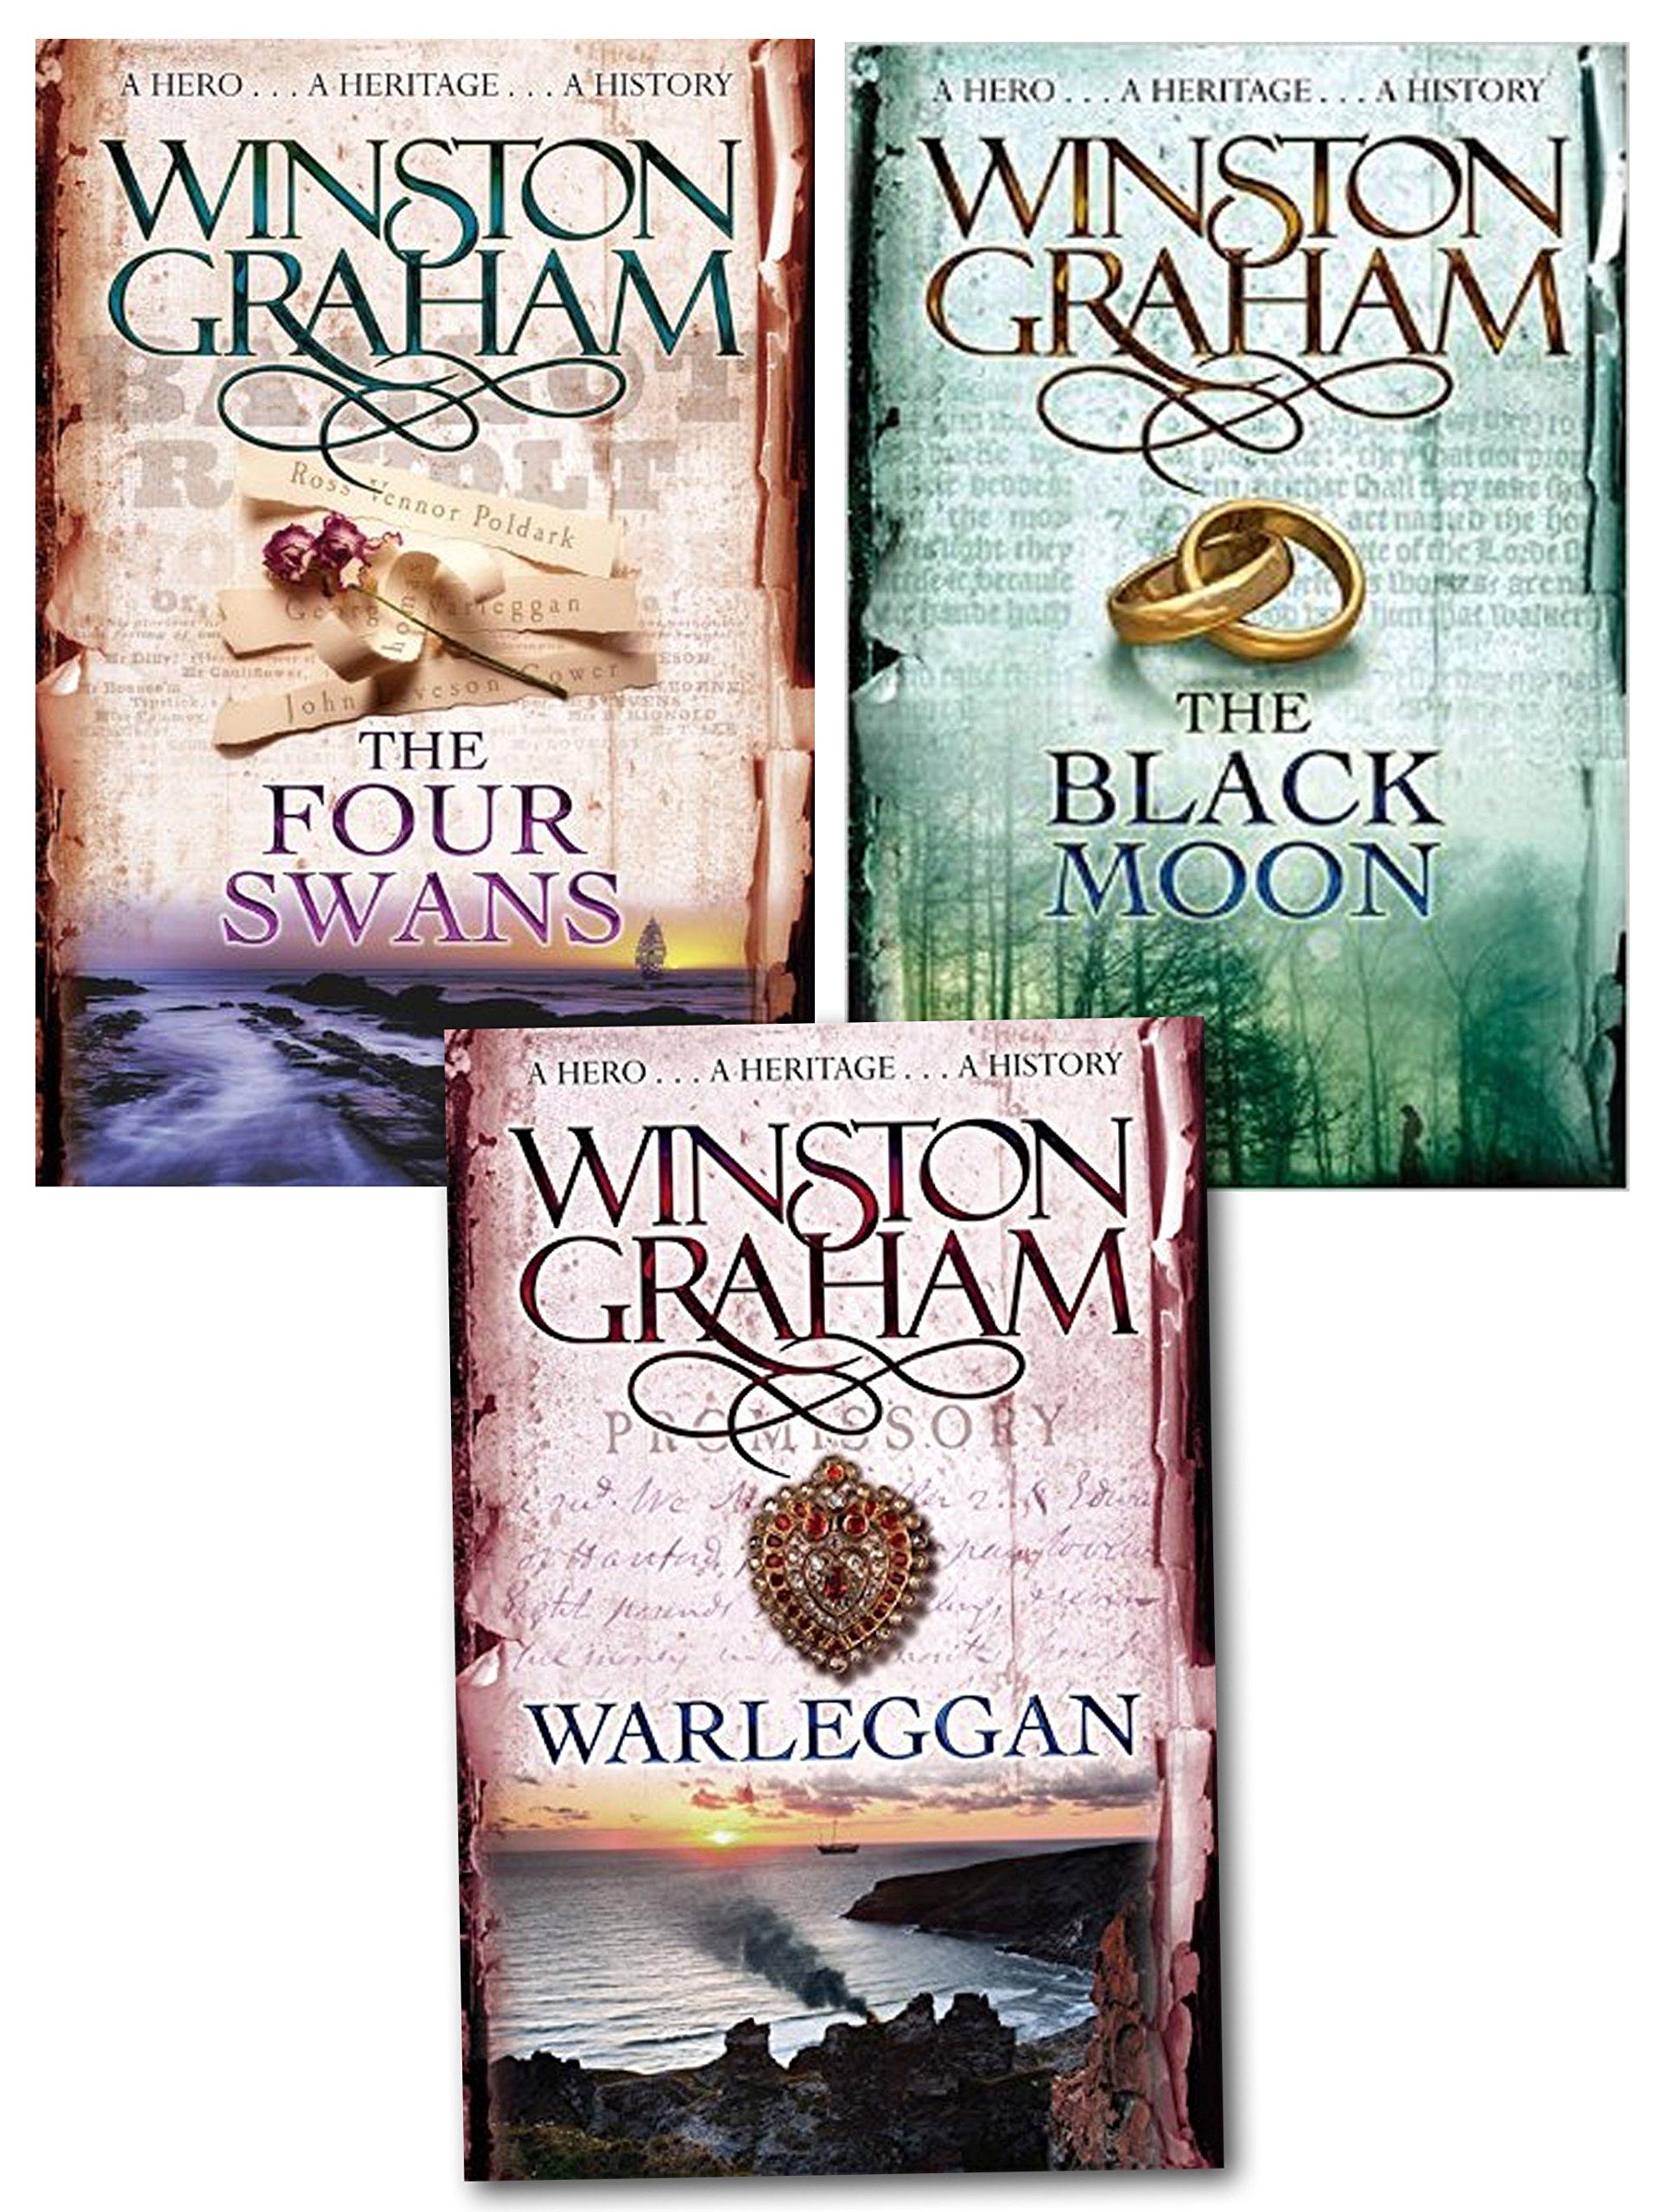 Poldark books in order - Winston Graham Poldark Series Trilogy Books 4 5 6 Collection 3 Books Set The Four Swans A Novel Of Cornwall 1795 1797 The Black Moon A Novel Of